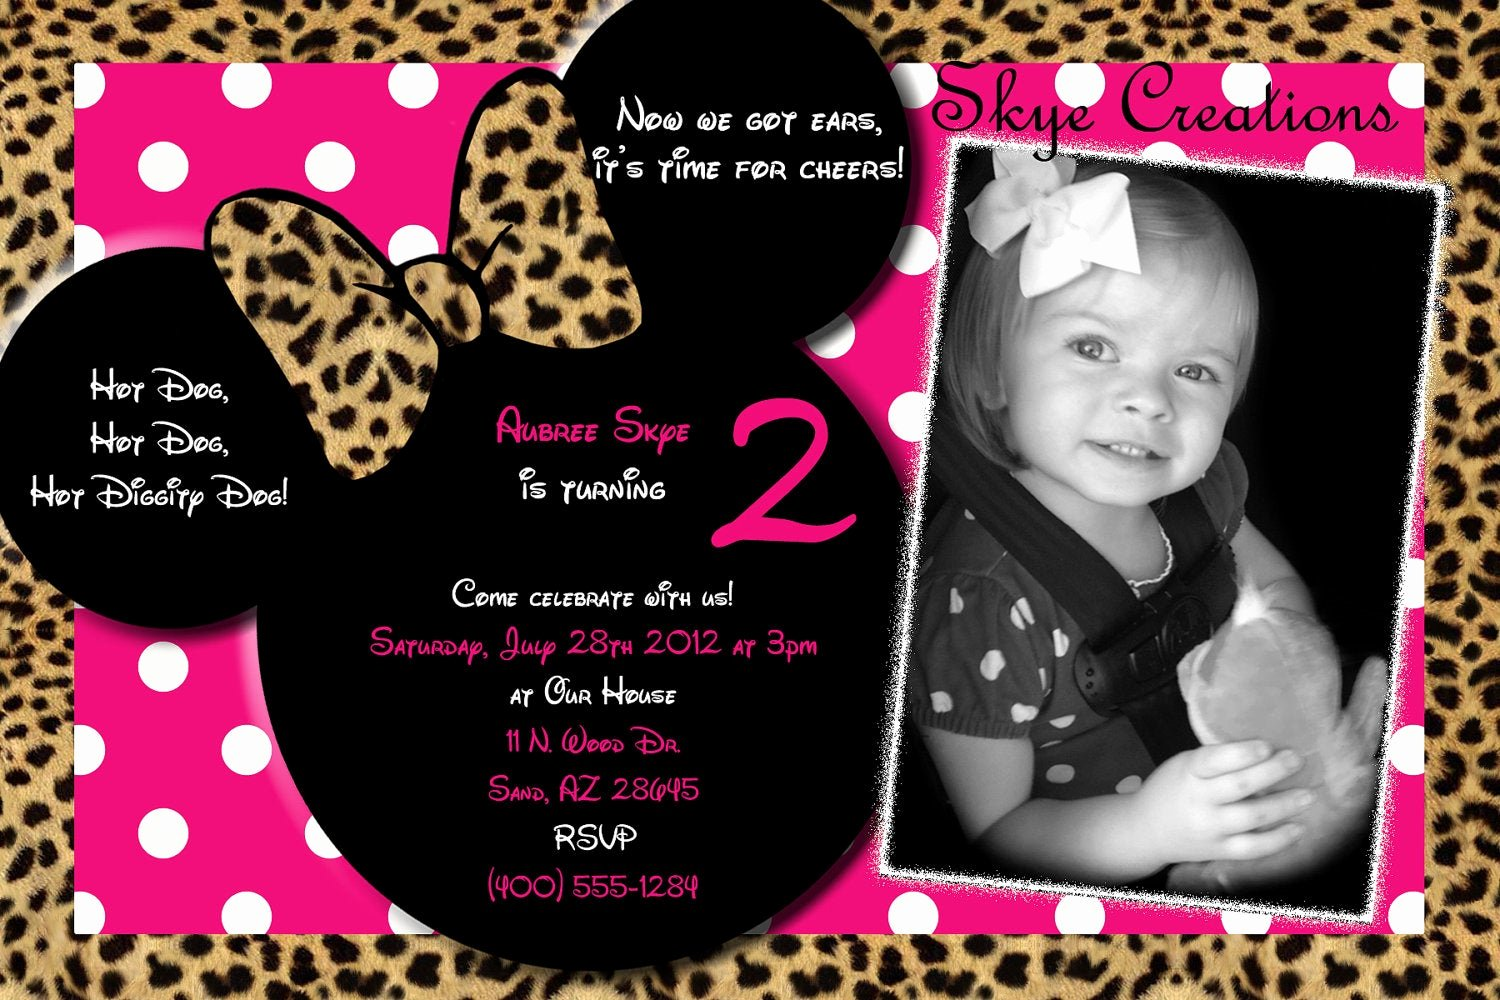 Minnie Mouse Personalized Invitations Unique Minnie Mouse Invitation Minnie Mouse Birthday Pink by Skyecreation